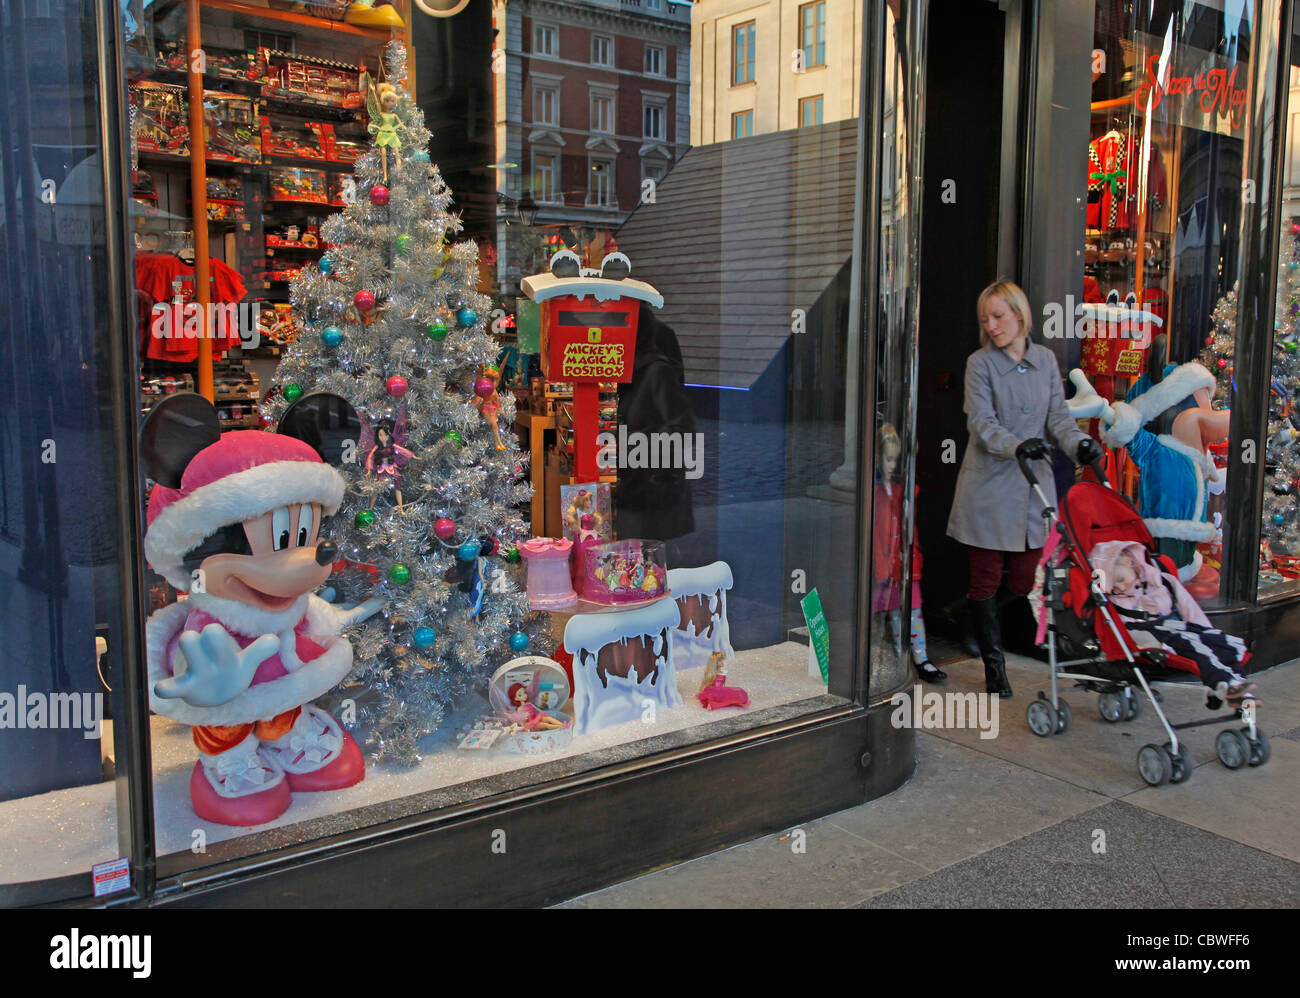 UK. CHRISTMAS SHOPPERS AT DISNEY STORE IN LONDON - Stock Image